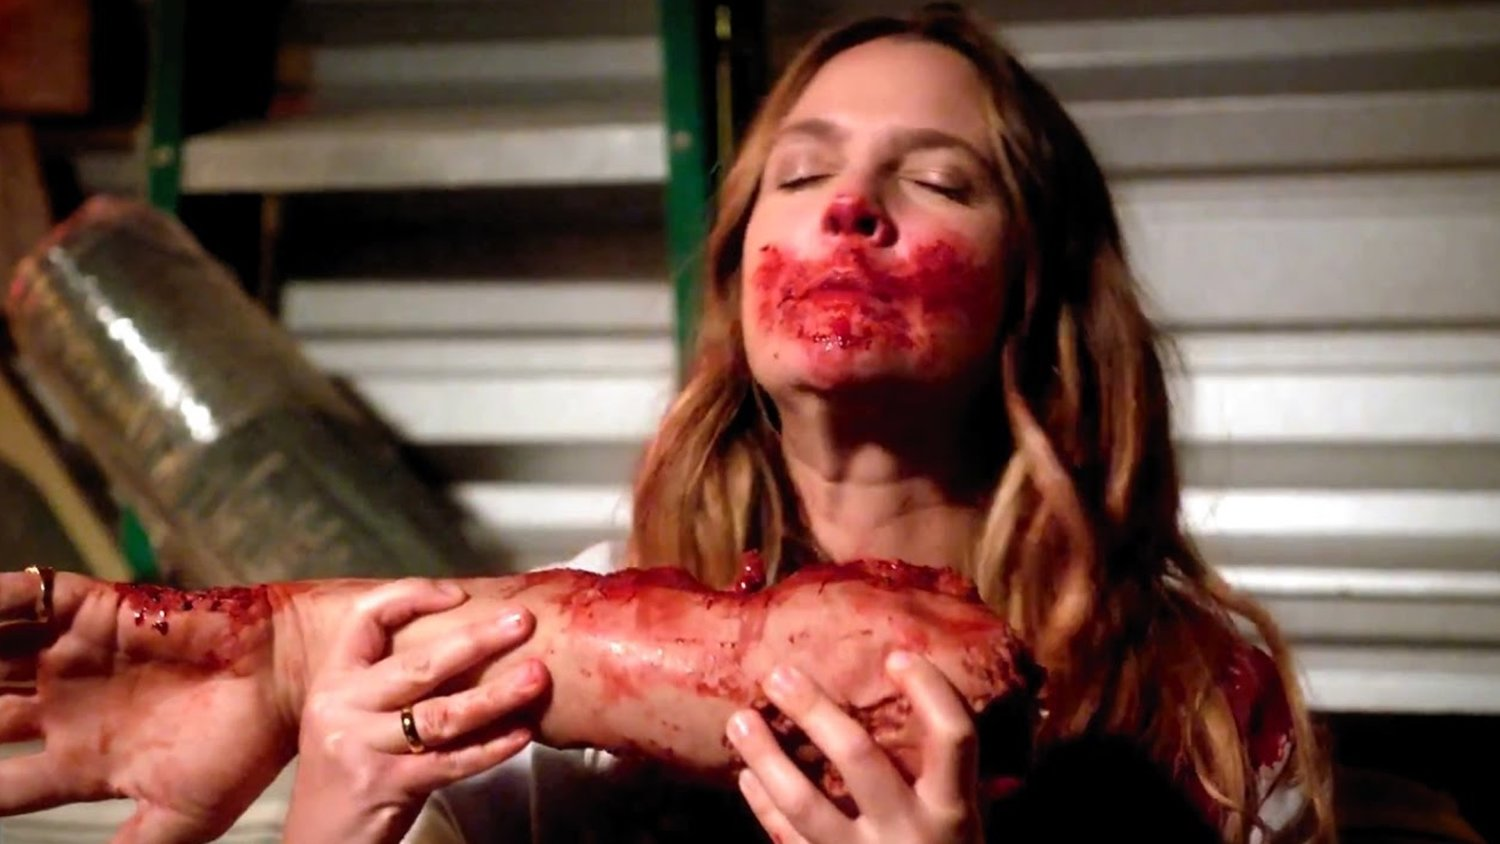 Netflix Renews Drew Barrymore's SANTA CLARITA DIET For a Second Season